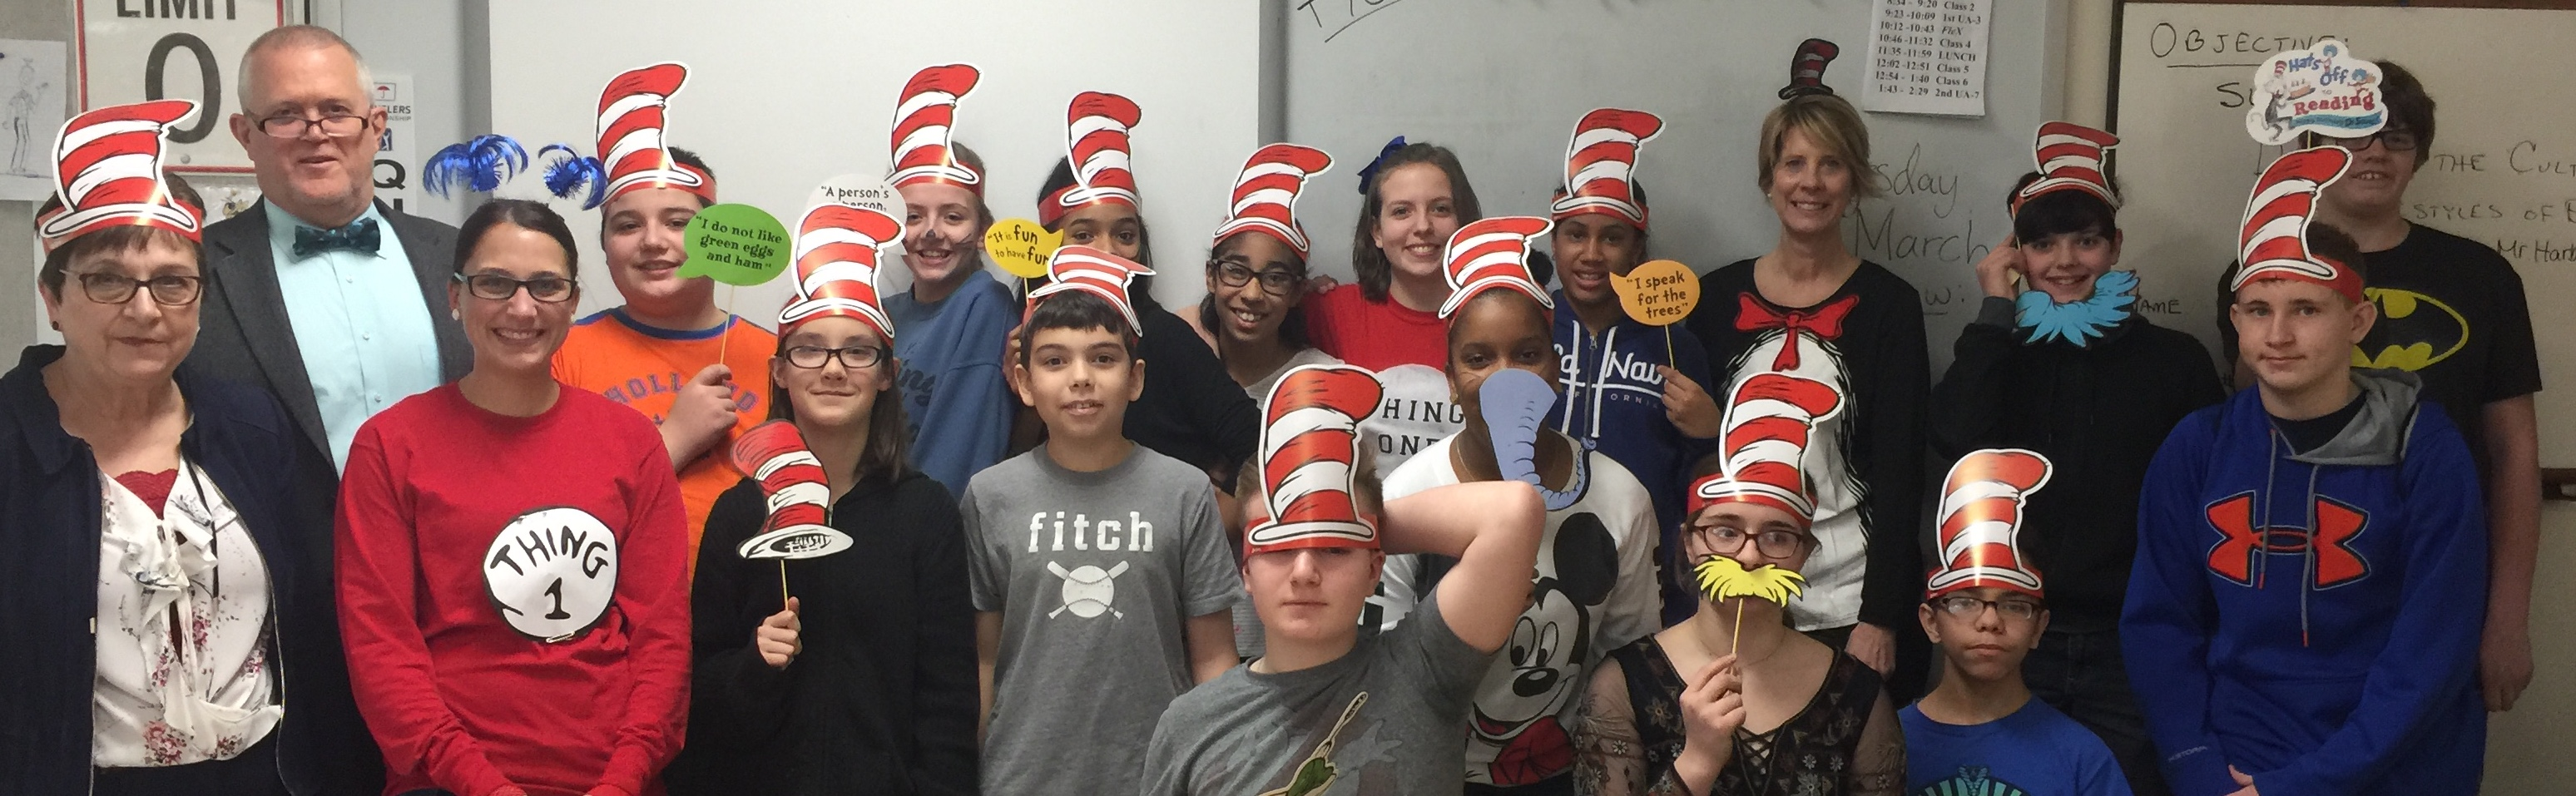 Dr. Suess Day 2017